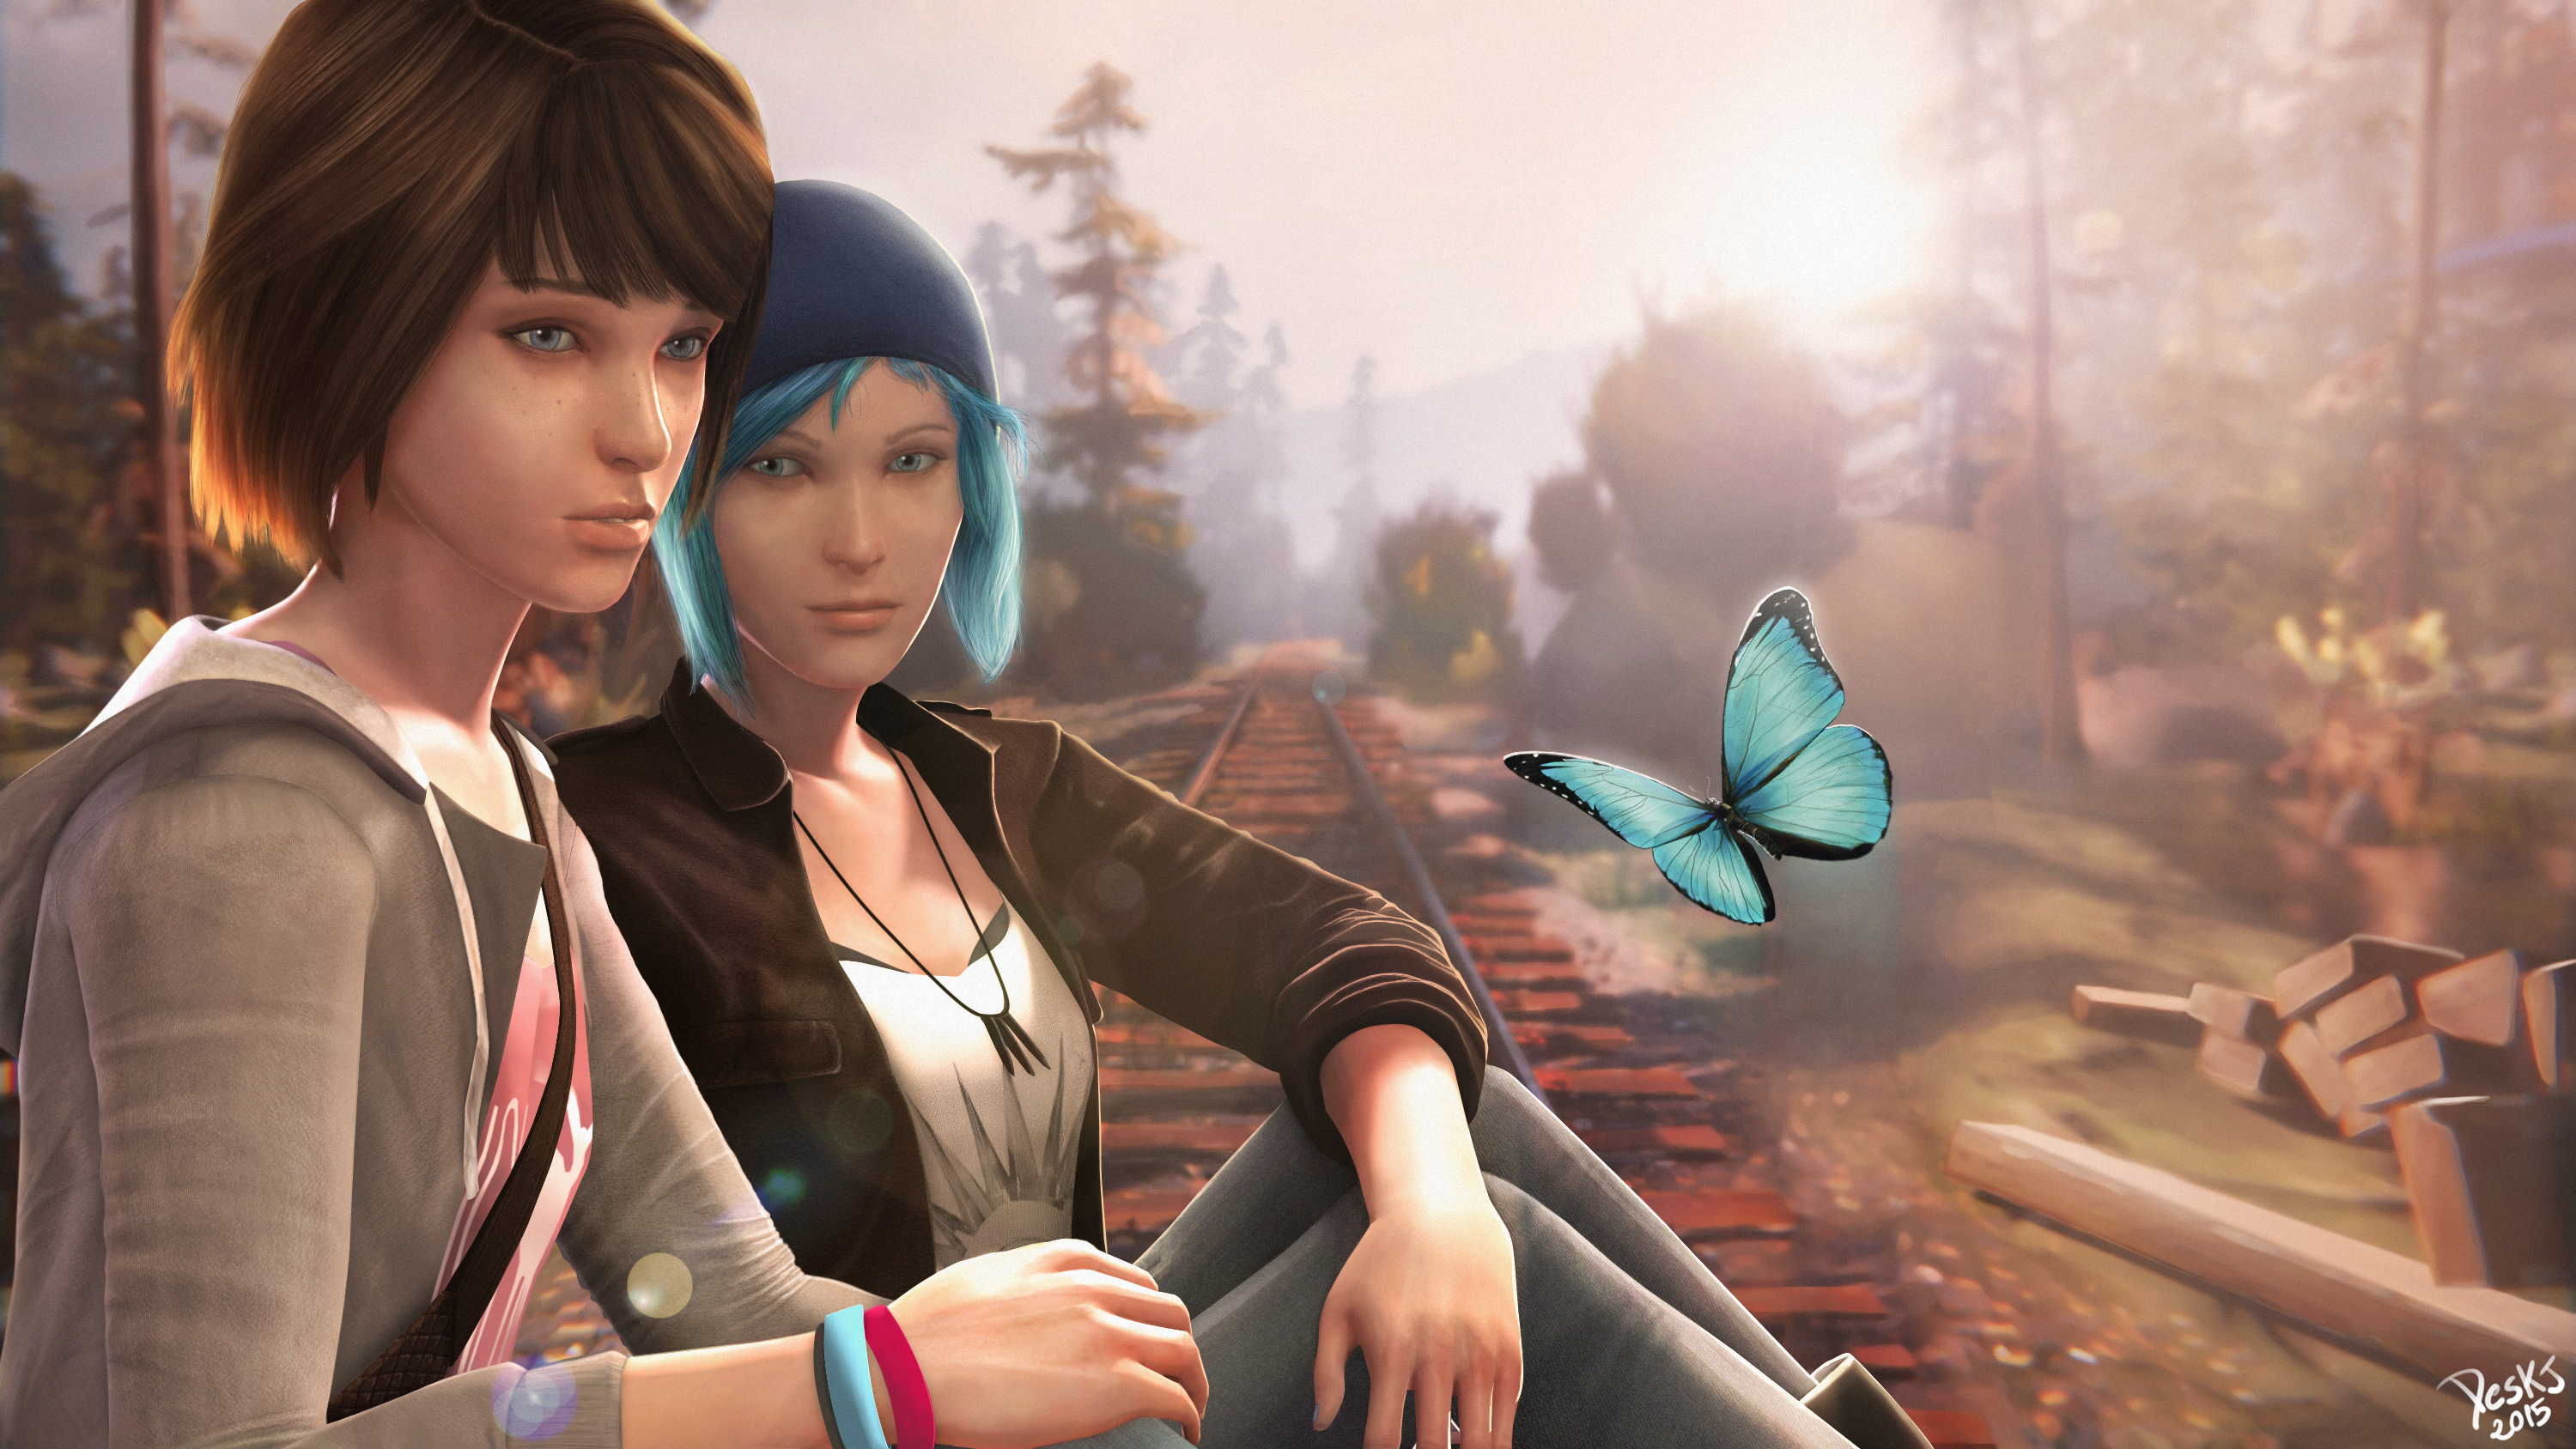 Life Is Strange 2 Wallpaper: 1920x1080 Max Caulfield Life Is Strange 2 Laptop Full HD